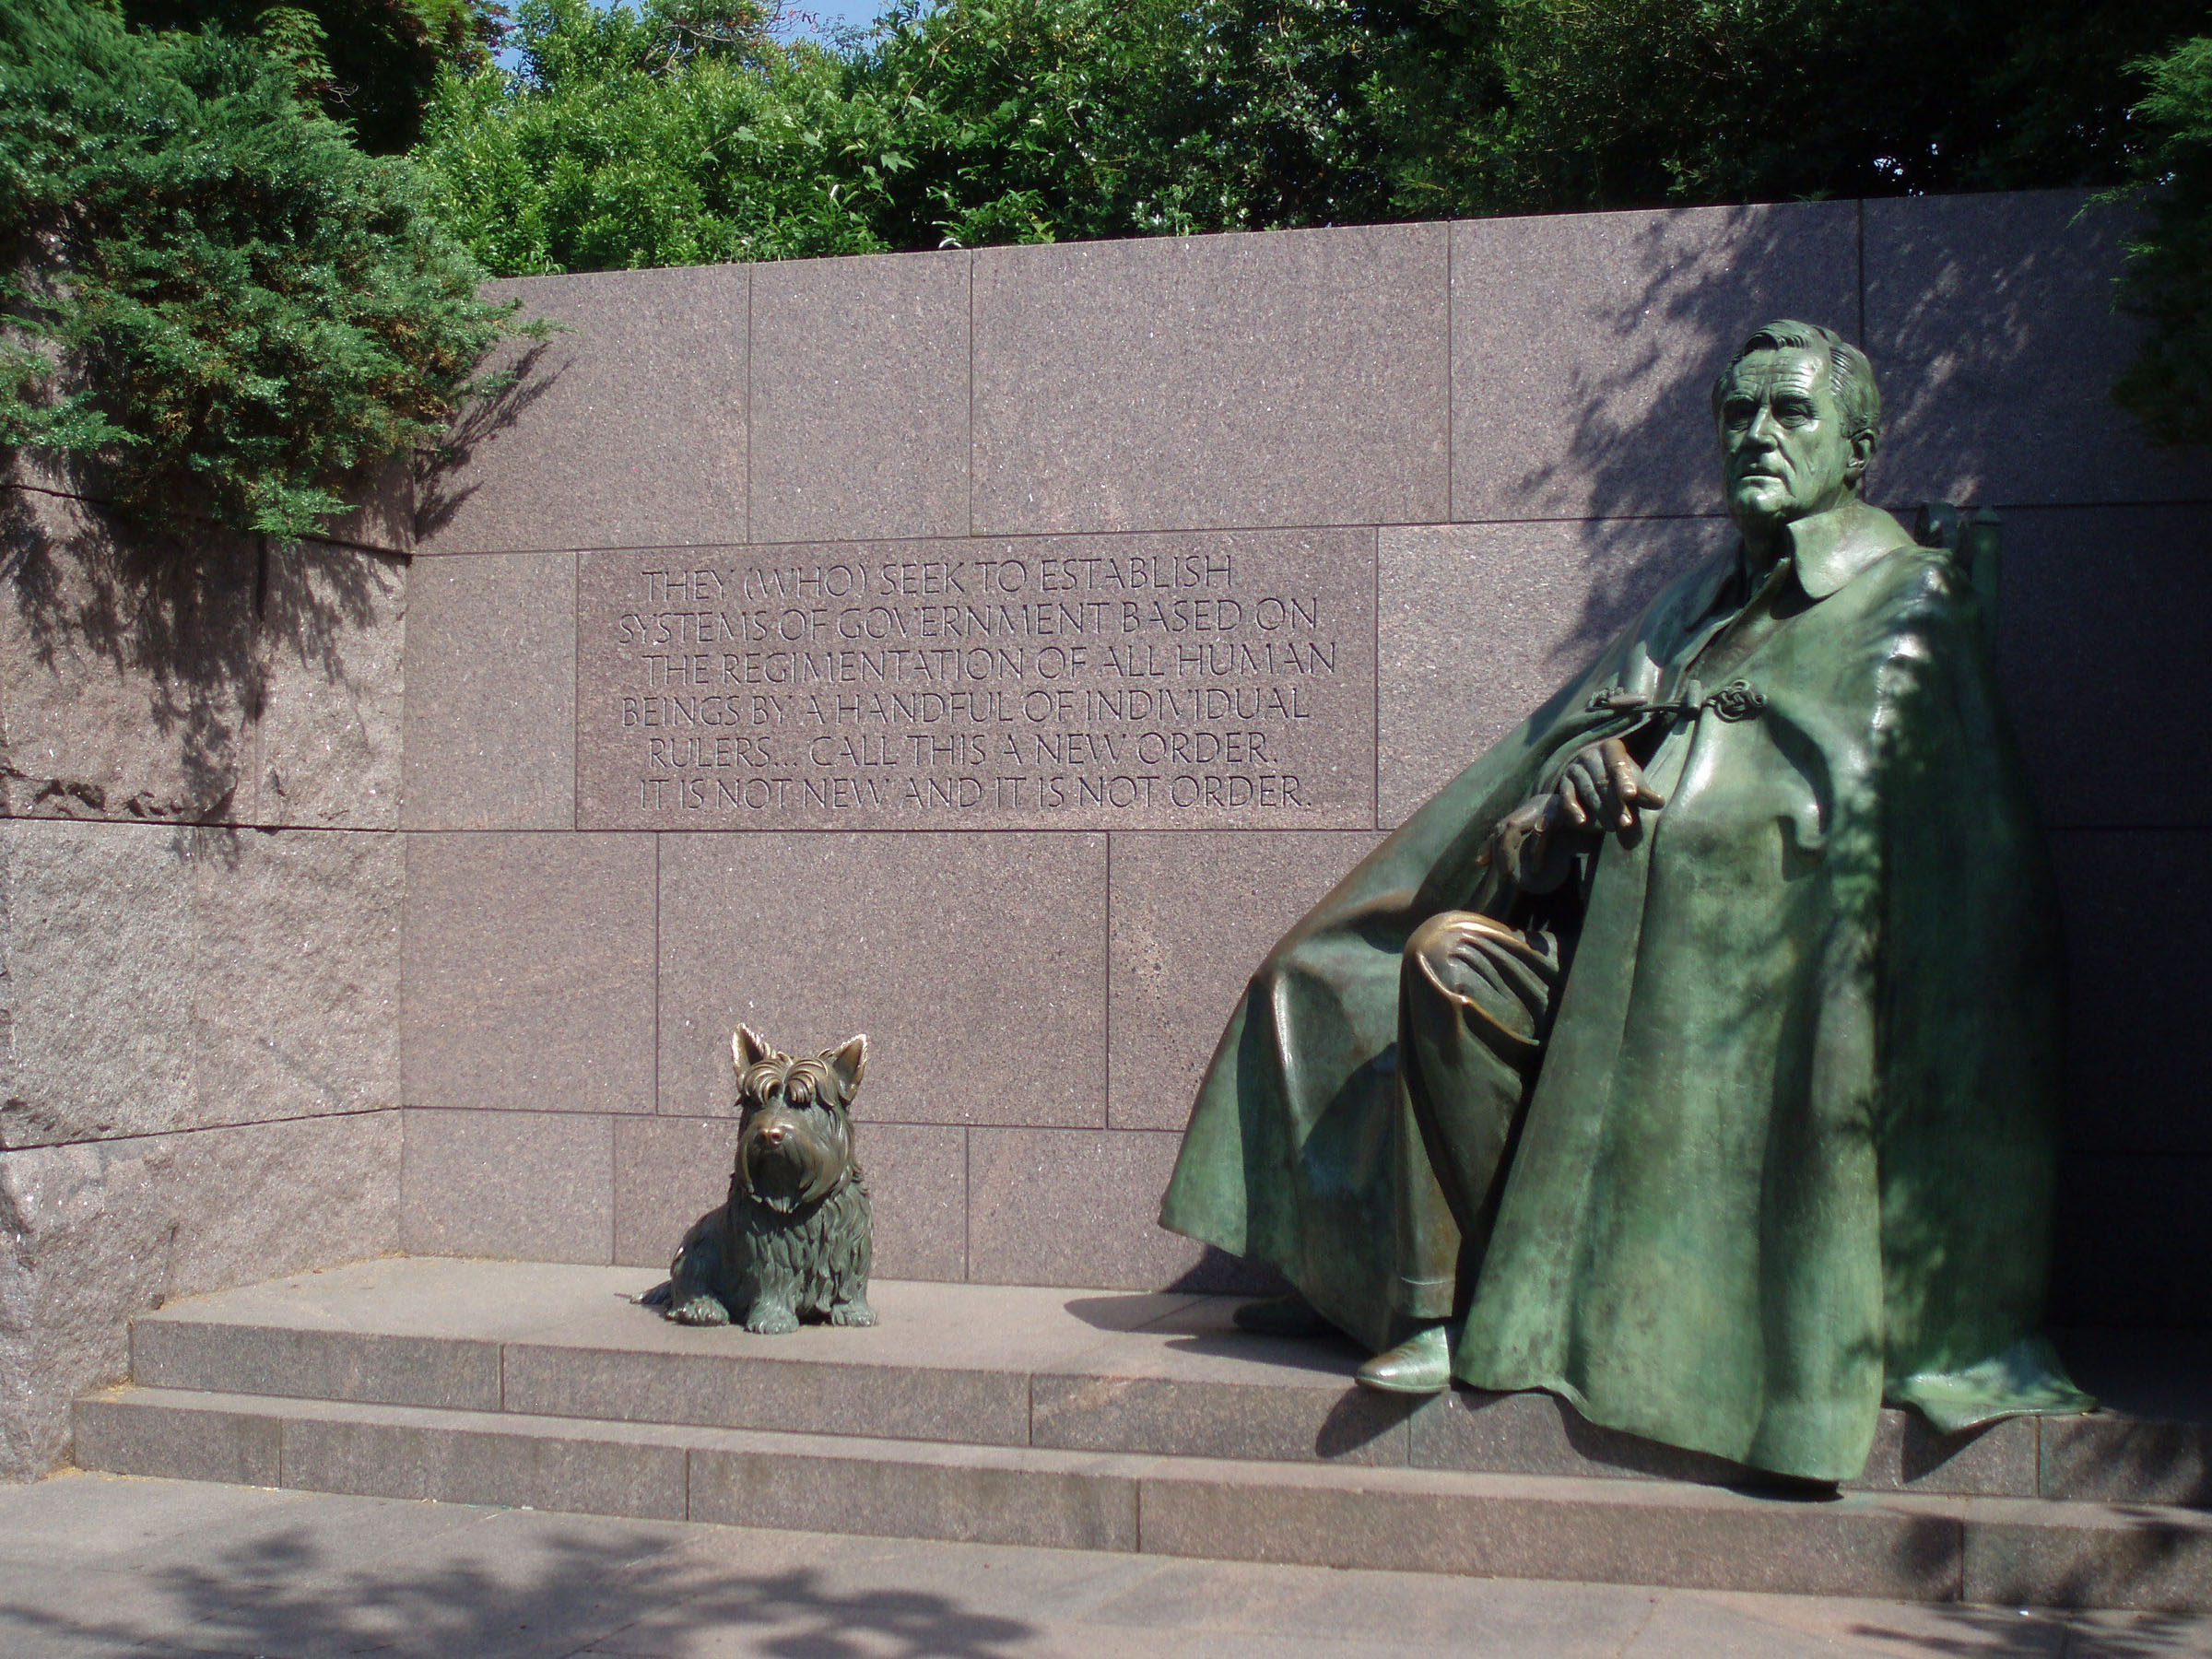 Pictures of the fdr memorial